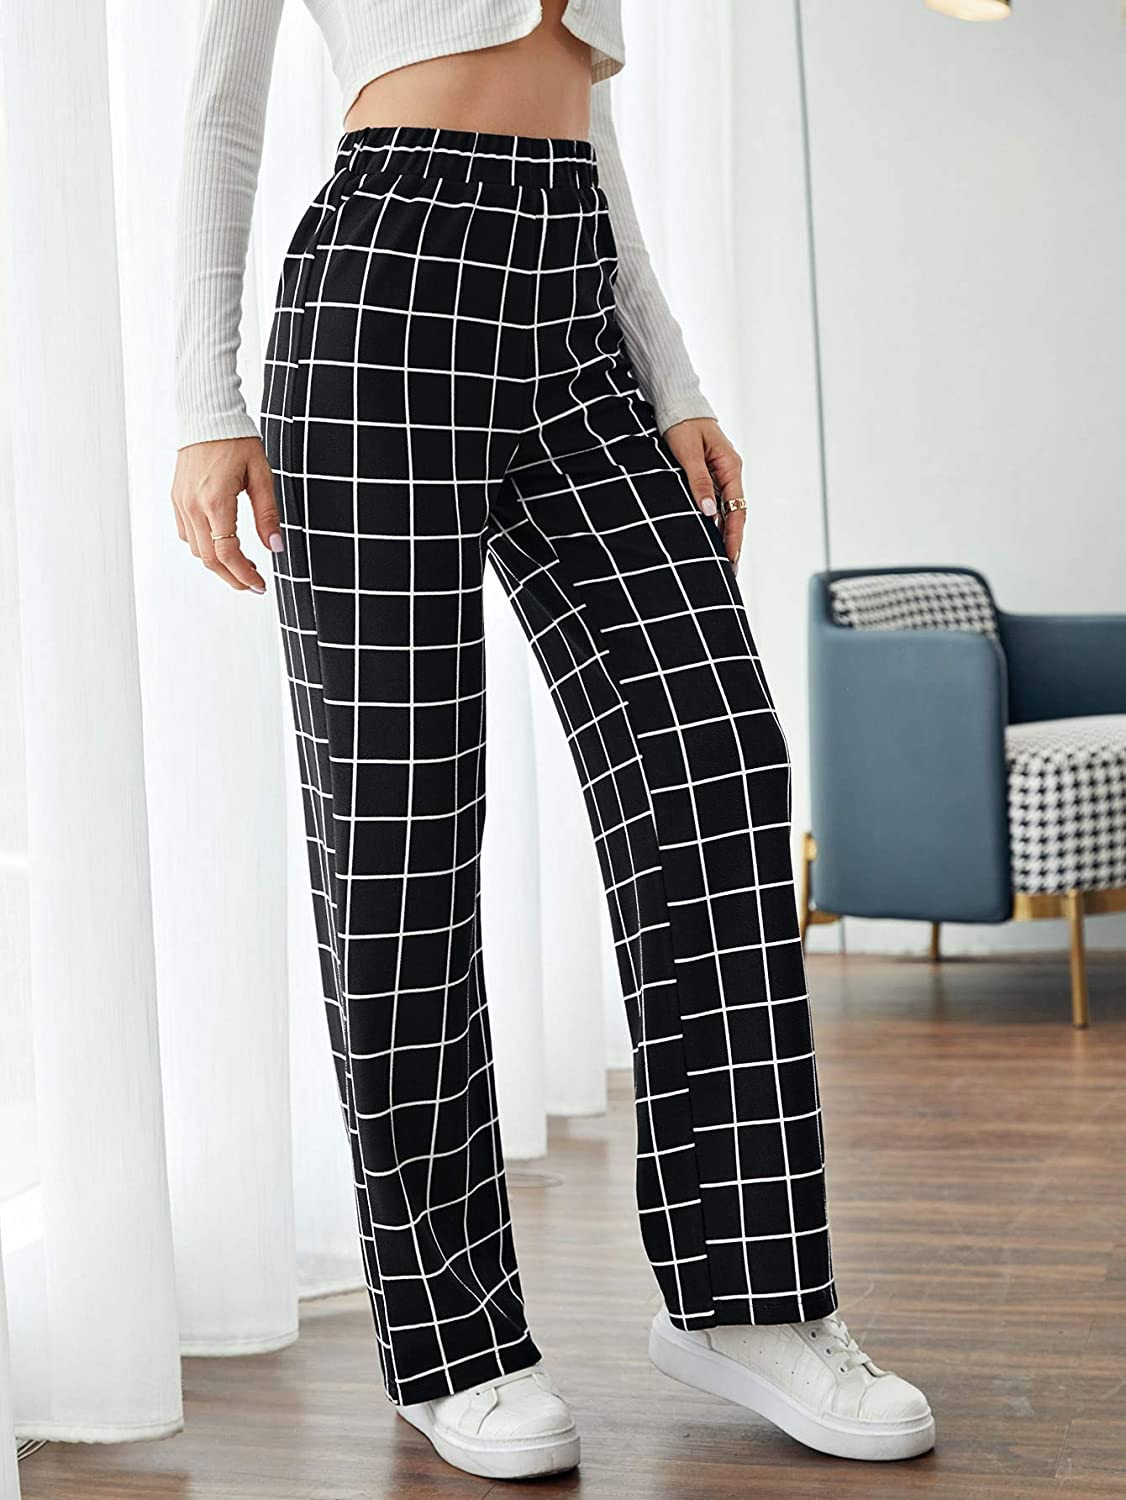 SOLY HUX Women's Plaid Elastic High Waisted Pants Casual Trousers